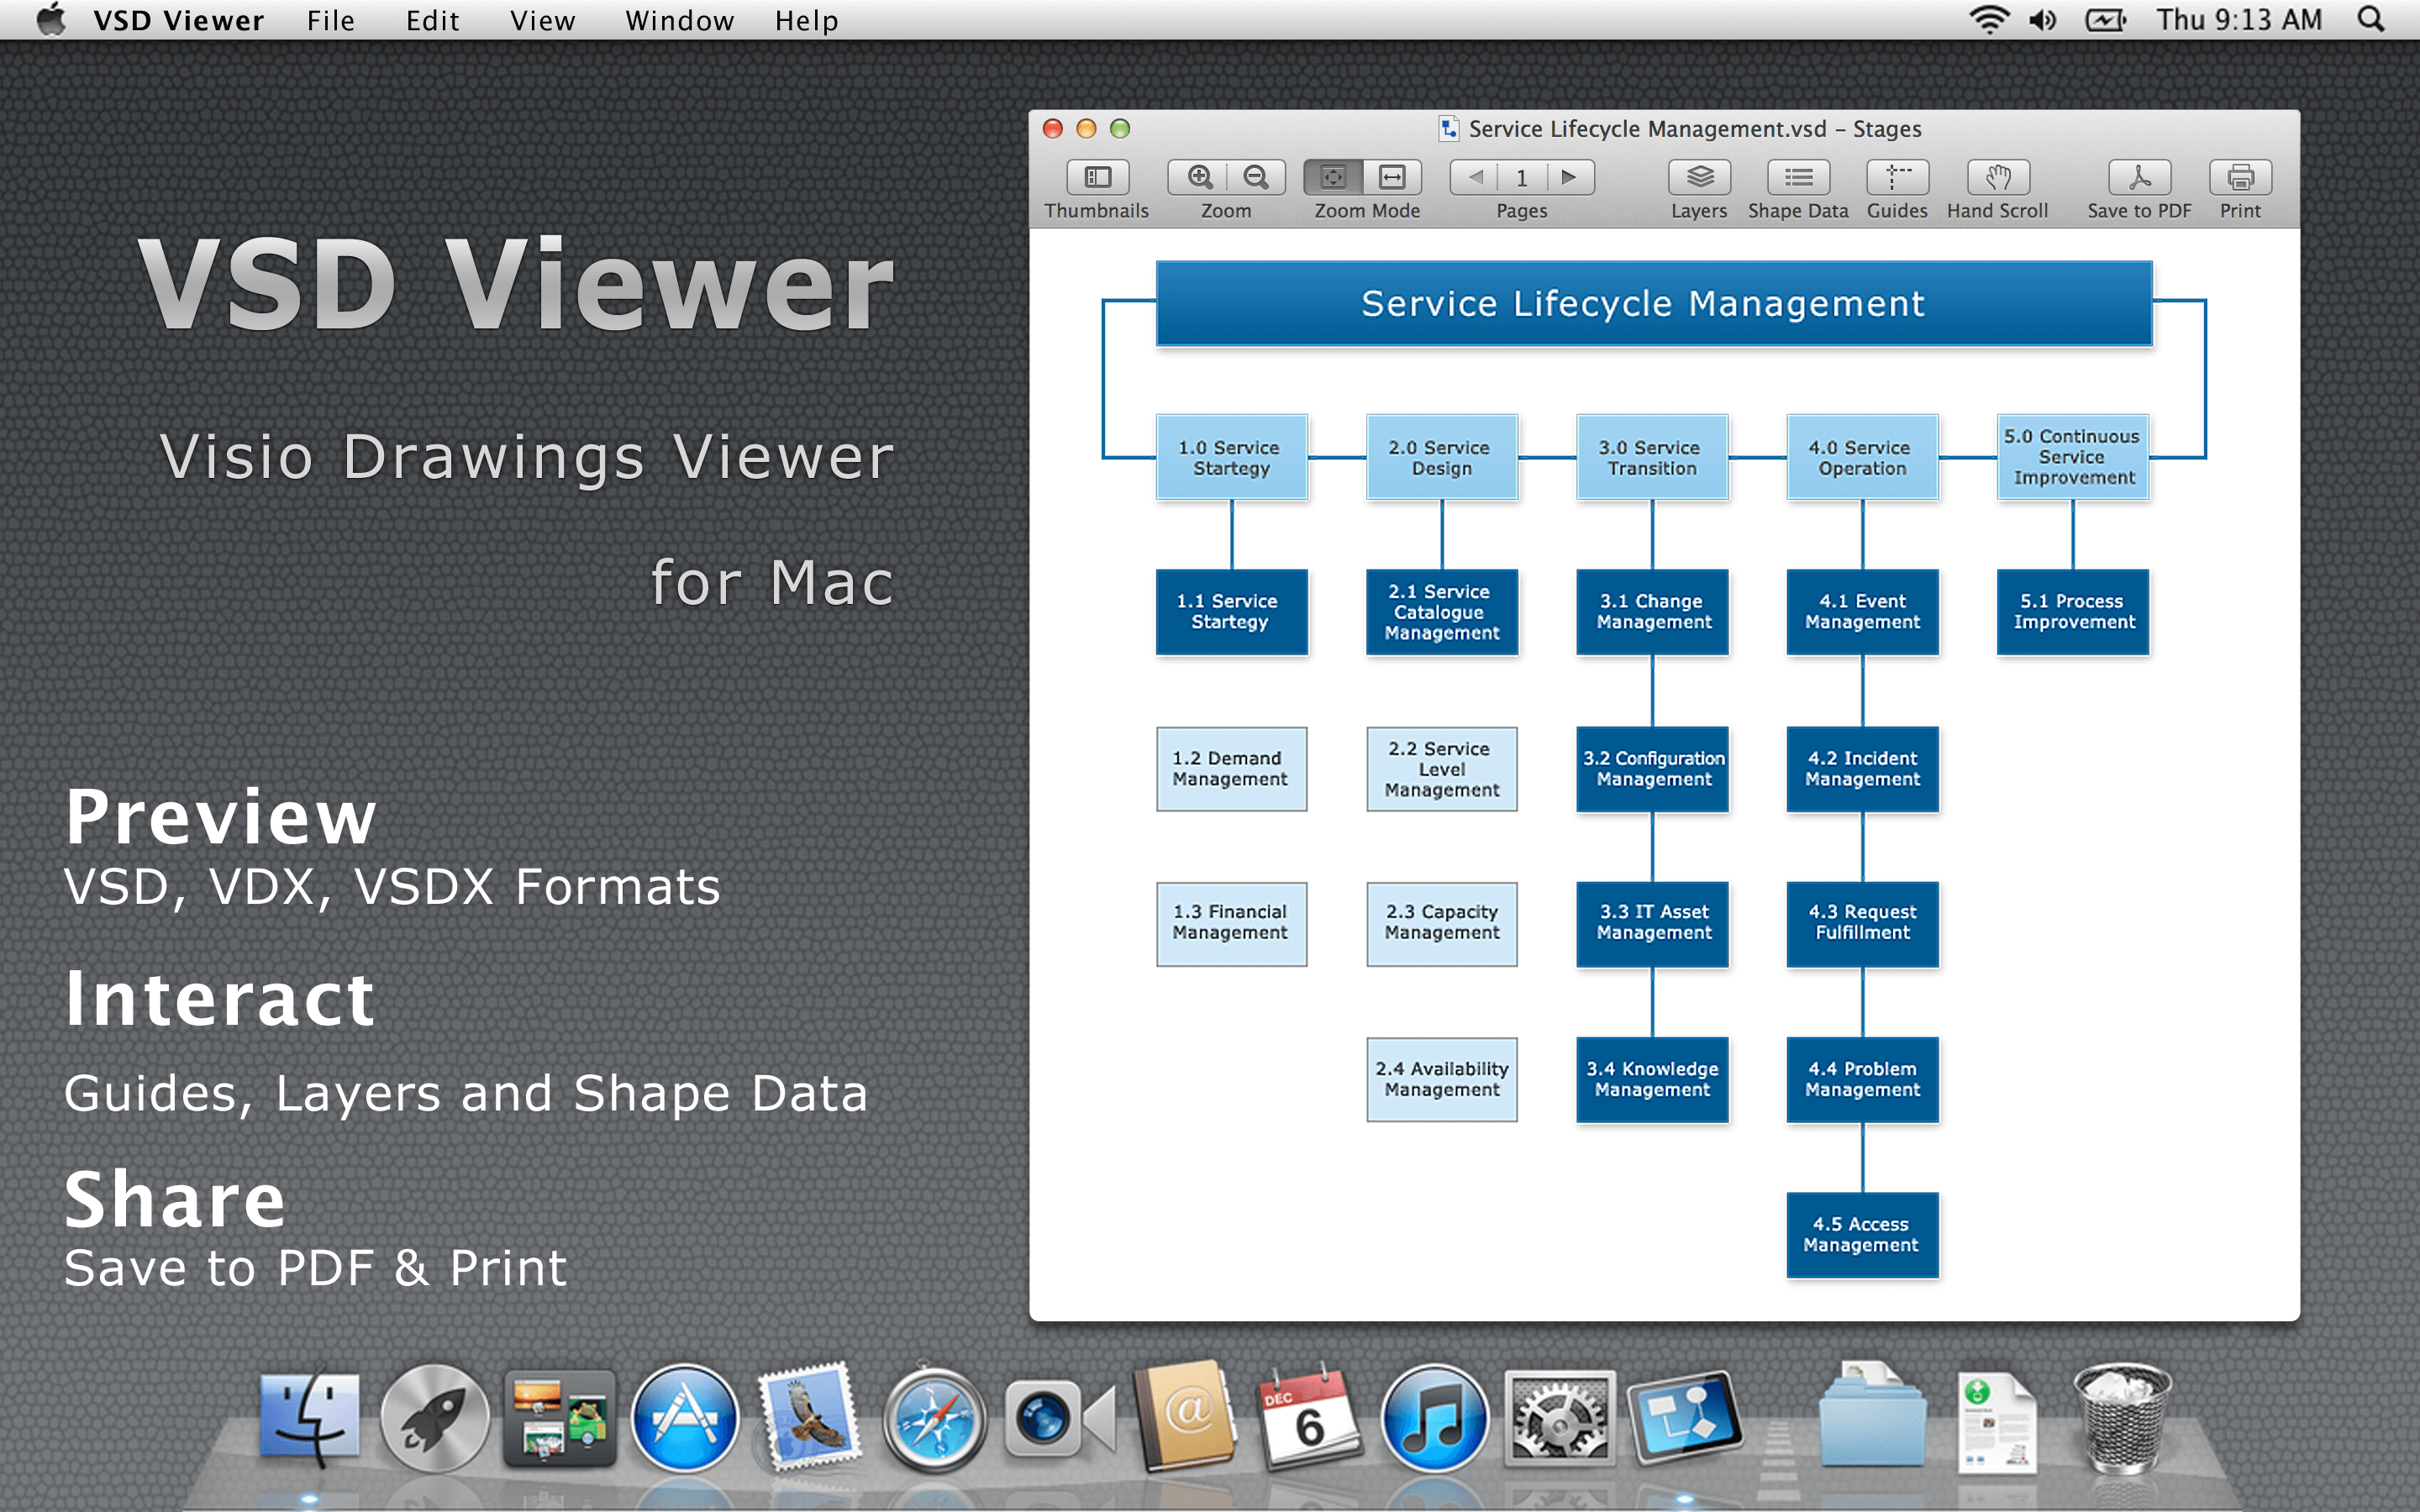 VSD Viewer - Visio® Viewer for Mac 6.2.1 full